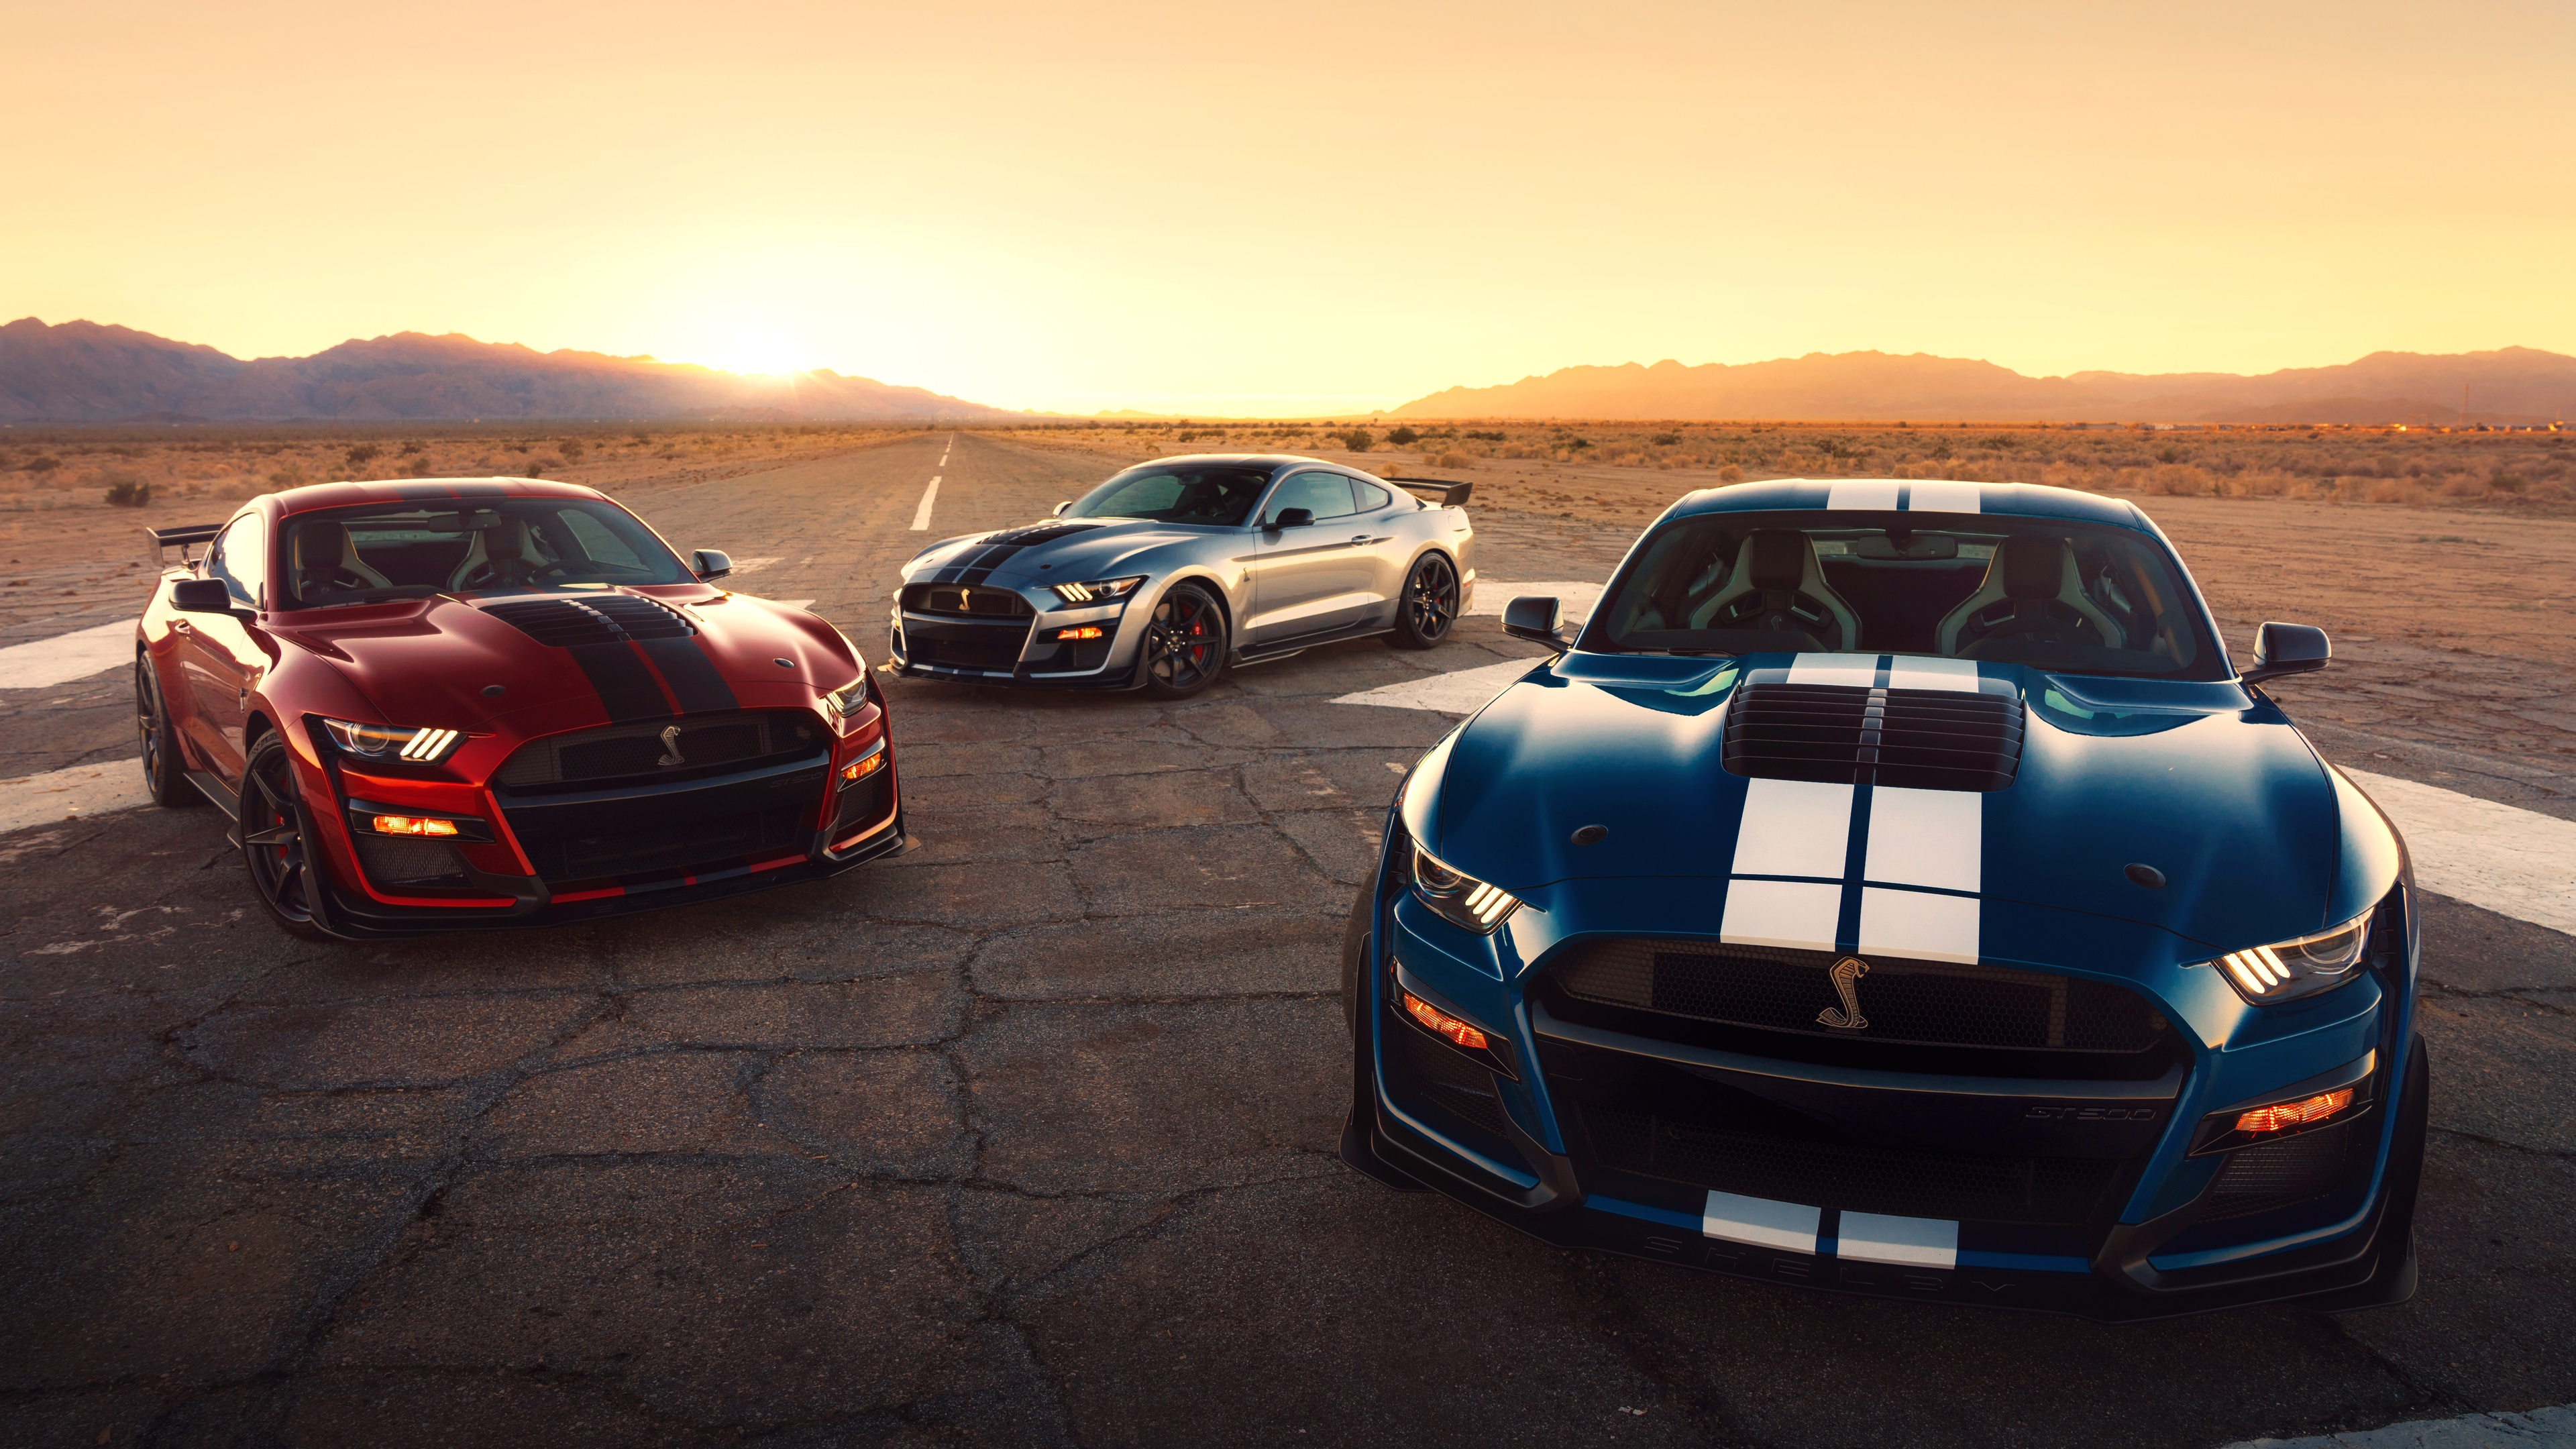 Wallpaper 4k Ford Mustang Shelby Gt500 2020 4k Wallpapers 5k Wallpapers 8k Wallpapers Cars Wallpapers Ford Mustang Wallpapers Hd Wallpapers Mustang Wallpapers